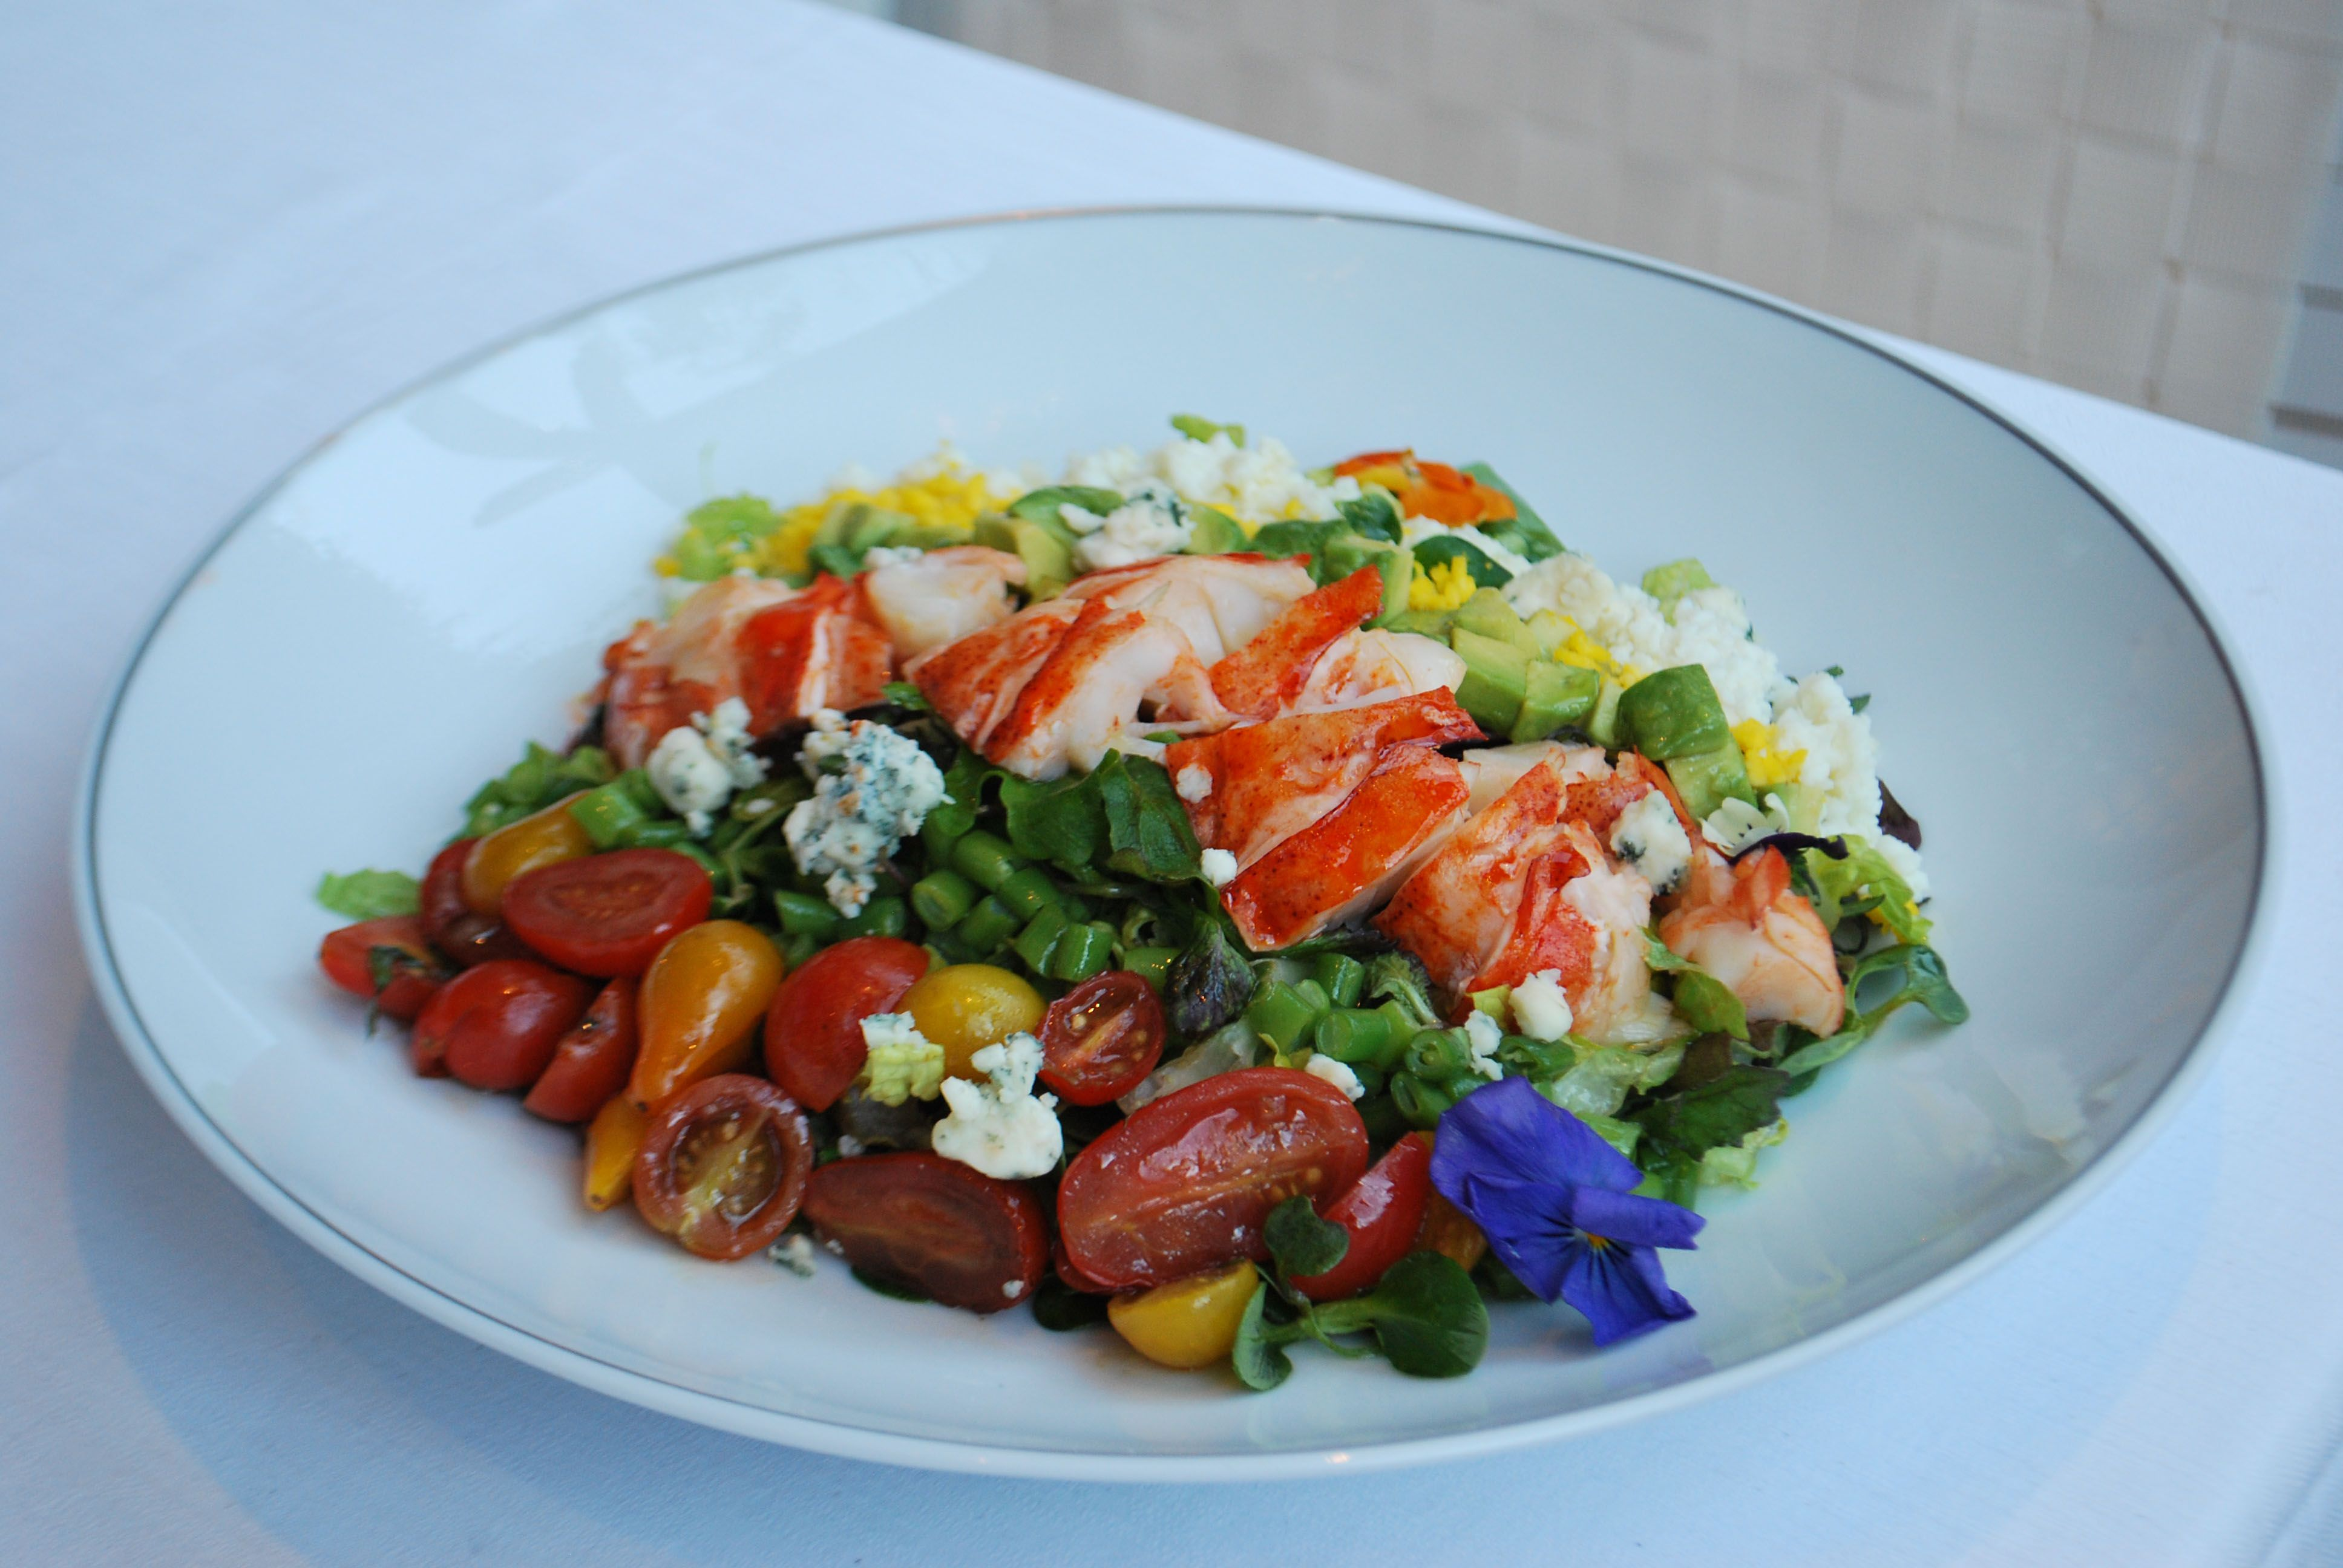 Have you tried our Lobster Cobb? It's delicious and